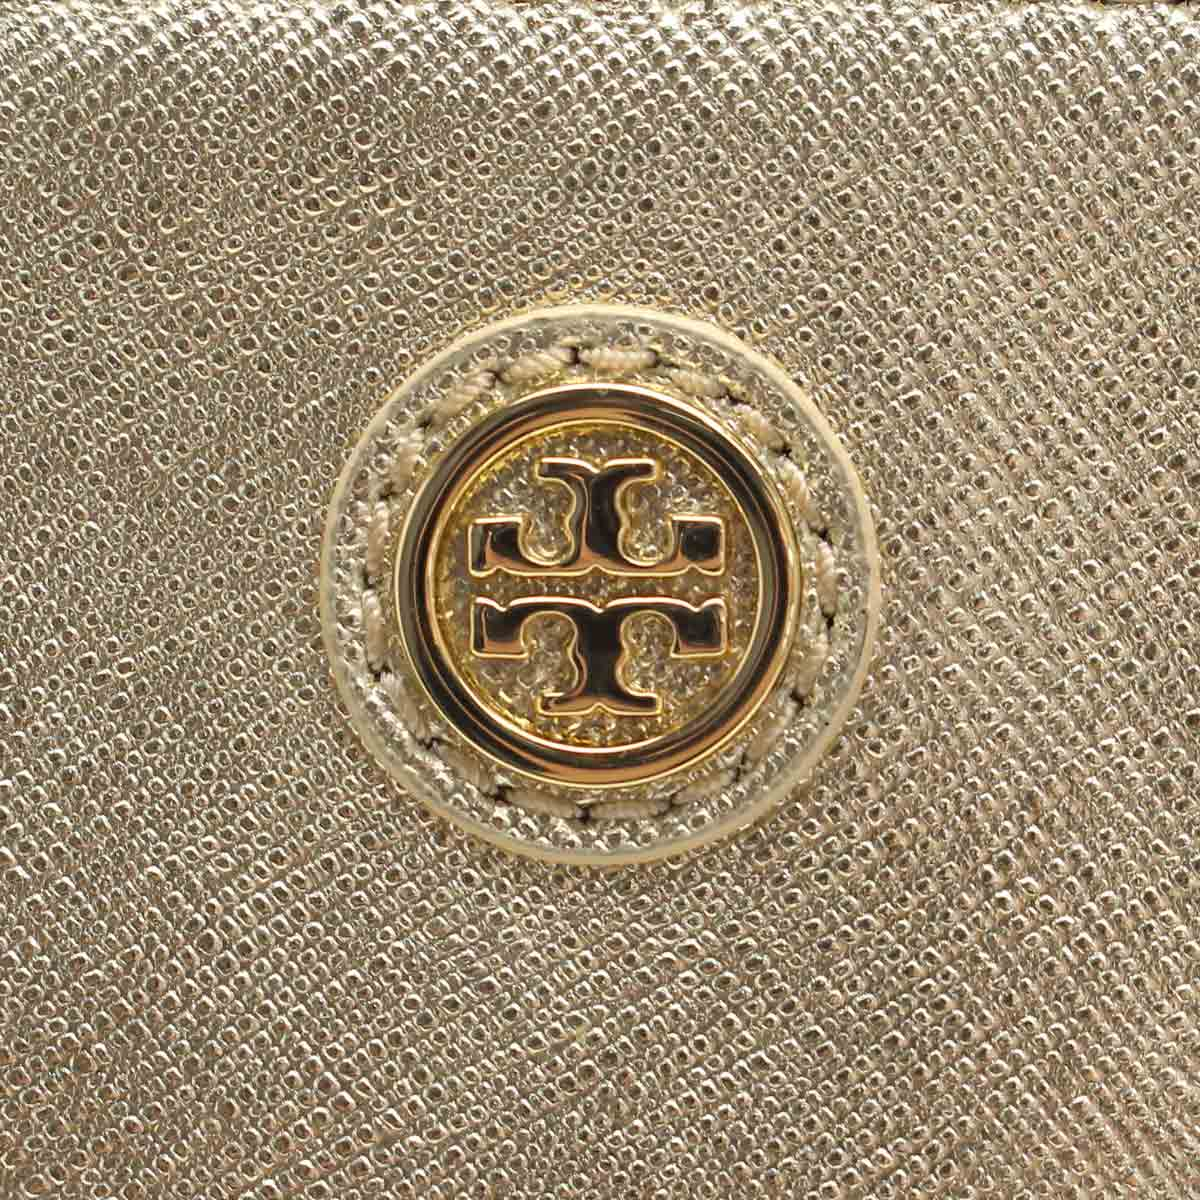 64ab95a8291 Bighit The total brand wholesale: (TORY BURCH) Tory Burch handbags ...